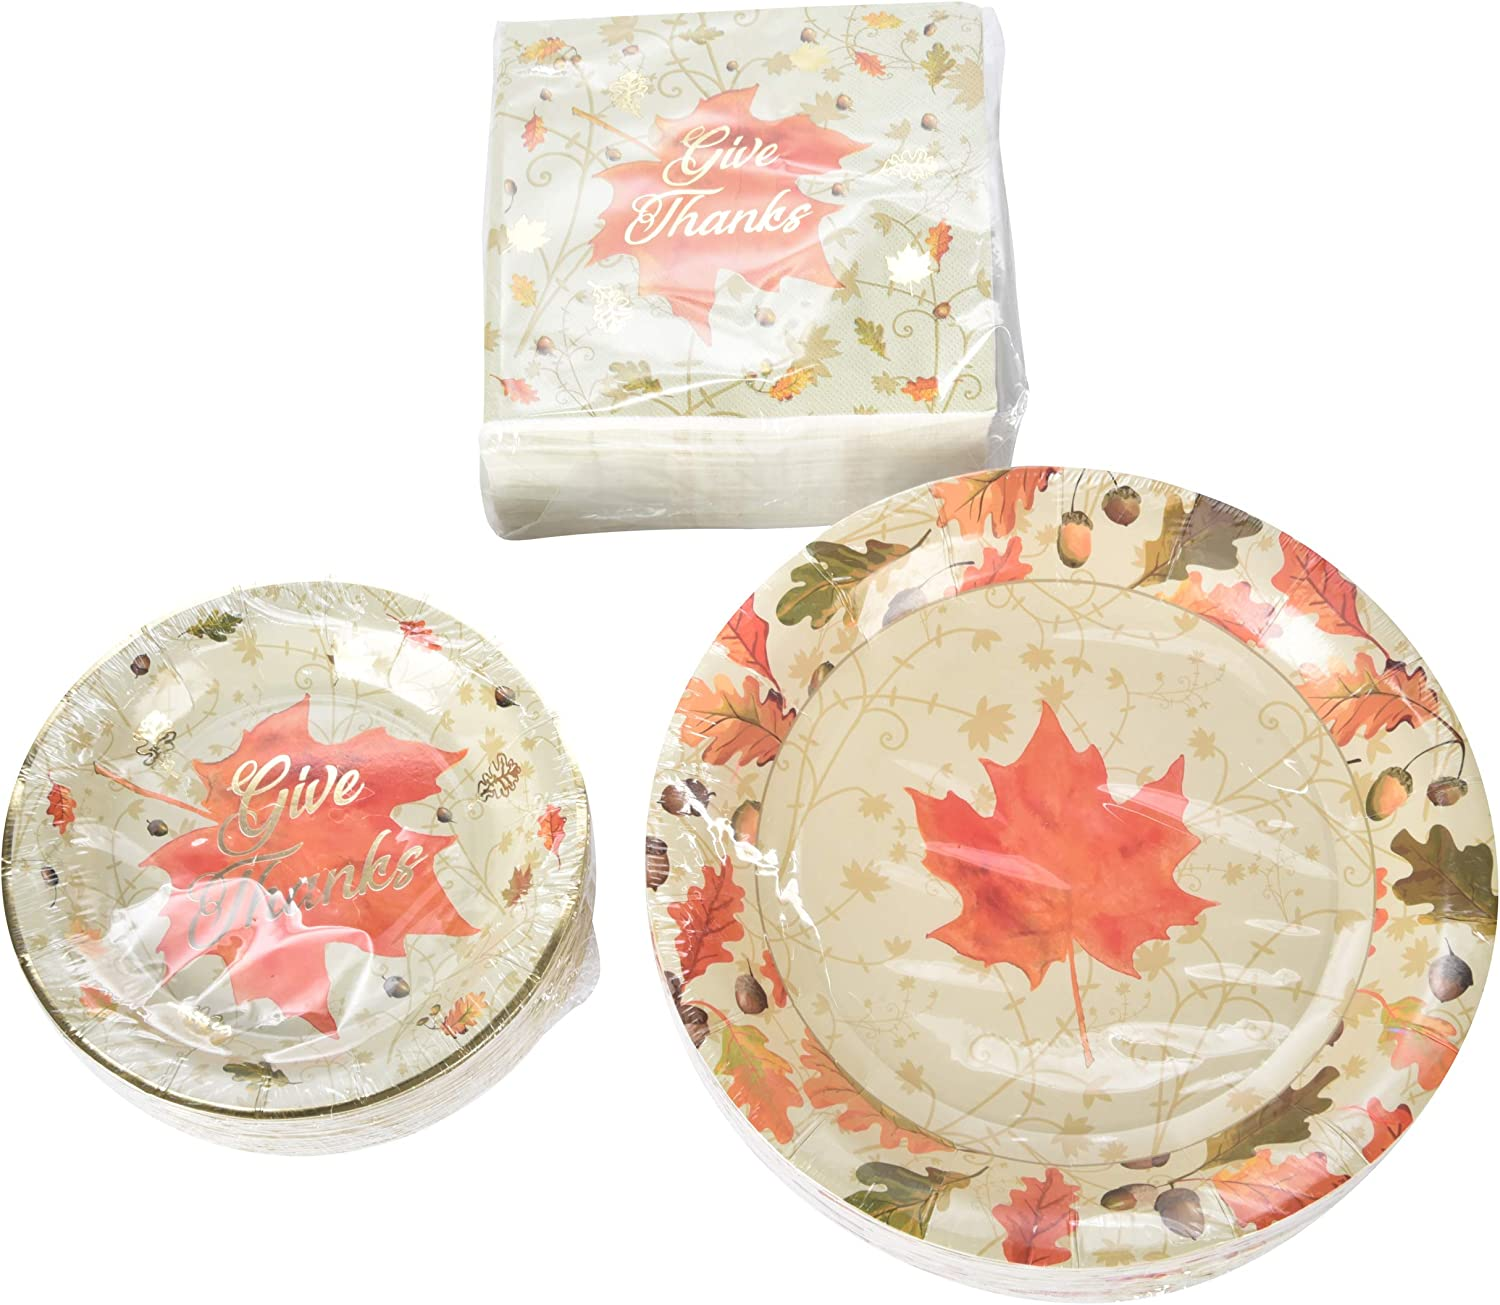 Autumn Leaves Themed Party Set - 36 16 Dinner Napkins Oversize Dinner Plates and